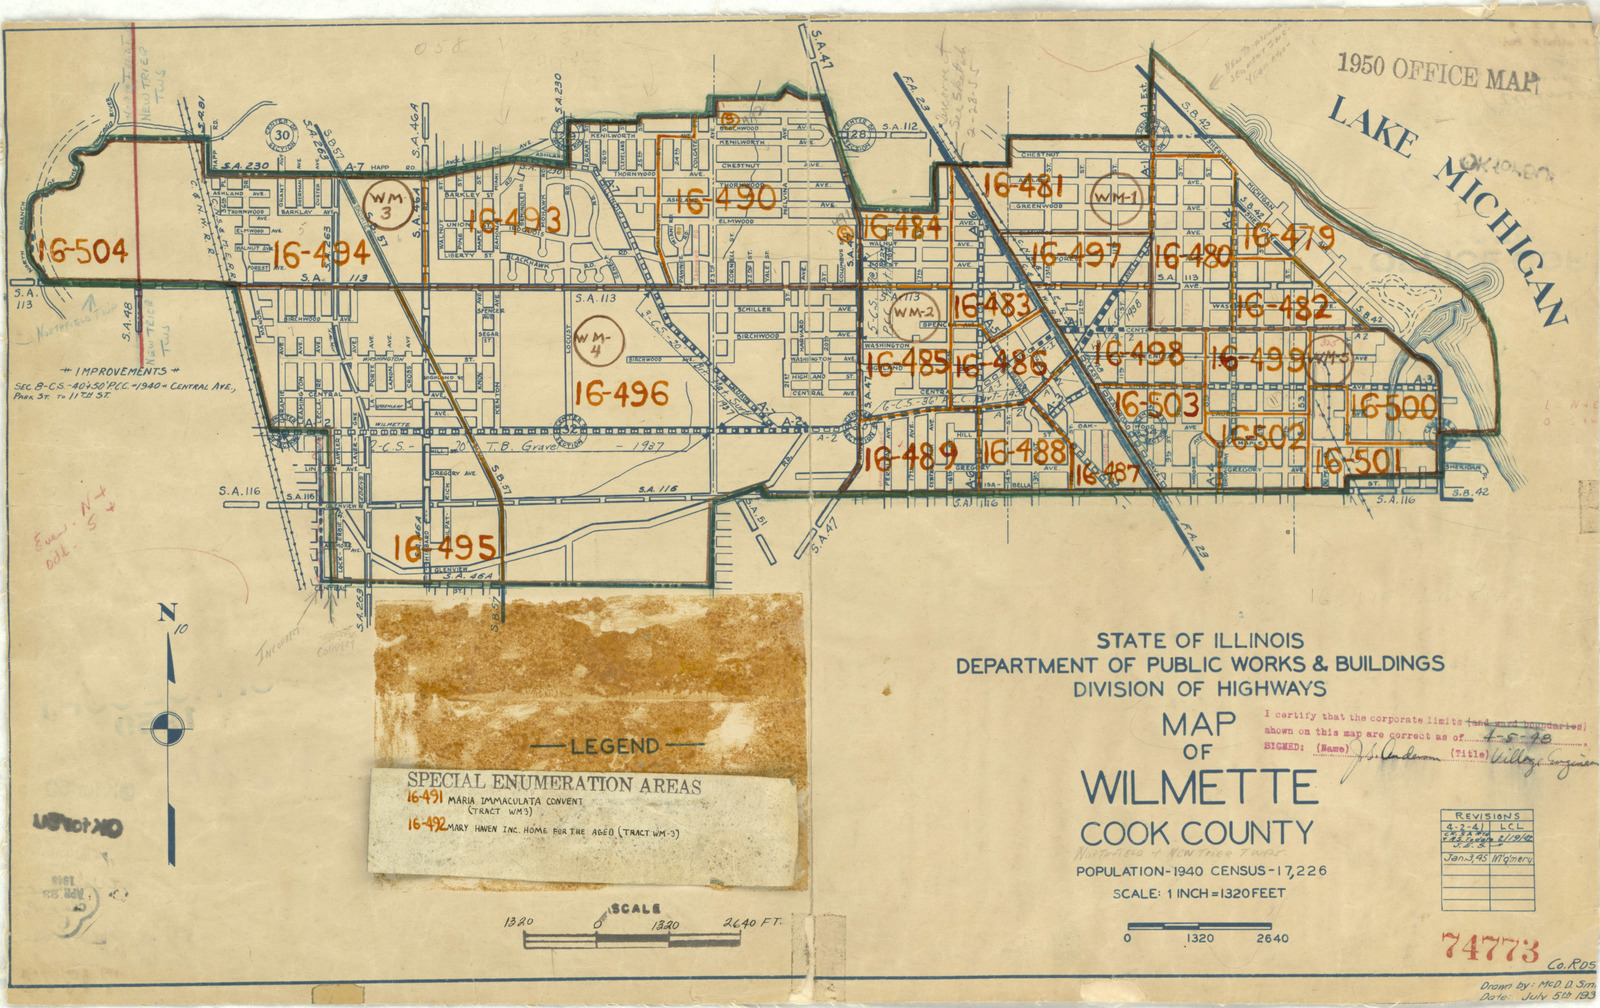 1950 Census Enumeration District Maps - Illinois (IL) - Cook County - Wilmette - ED 16-479 to 504